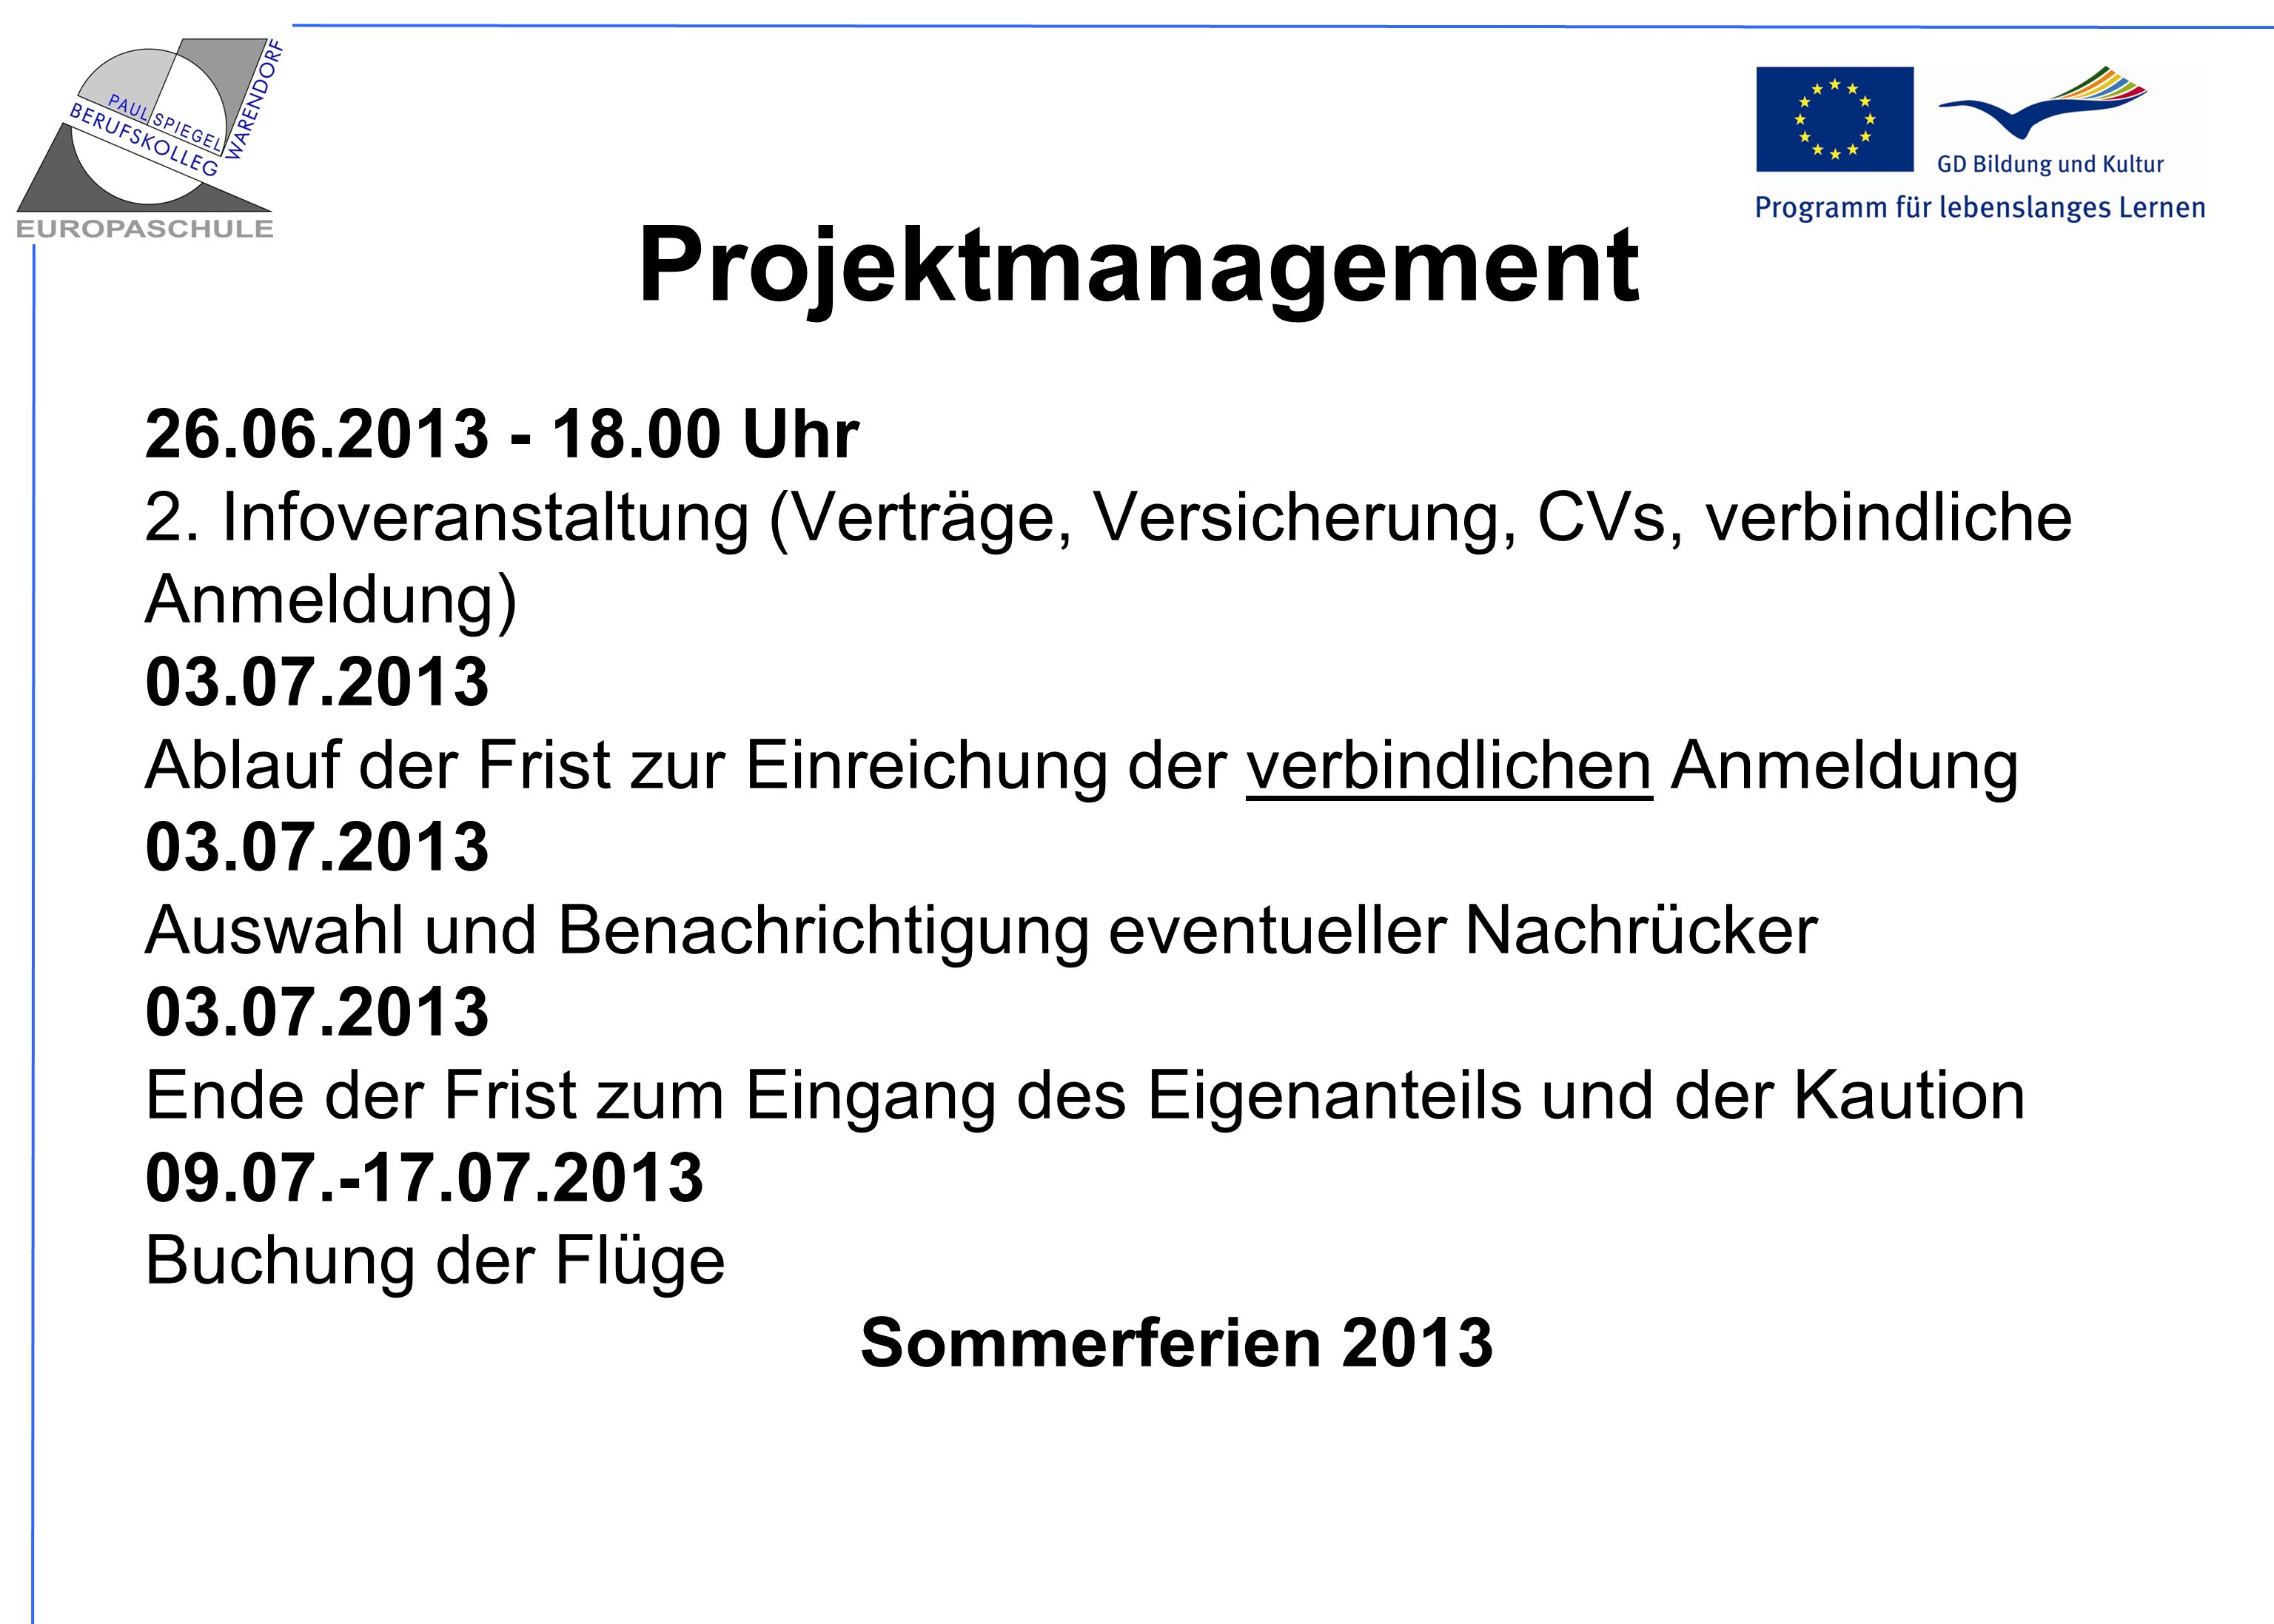 Projektmanagement 26.06.2013 - 18.00 Uhr